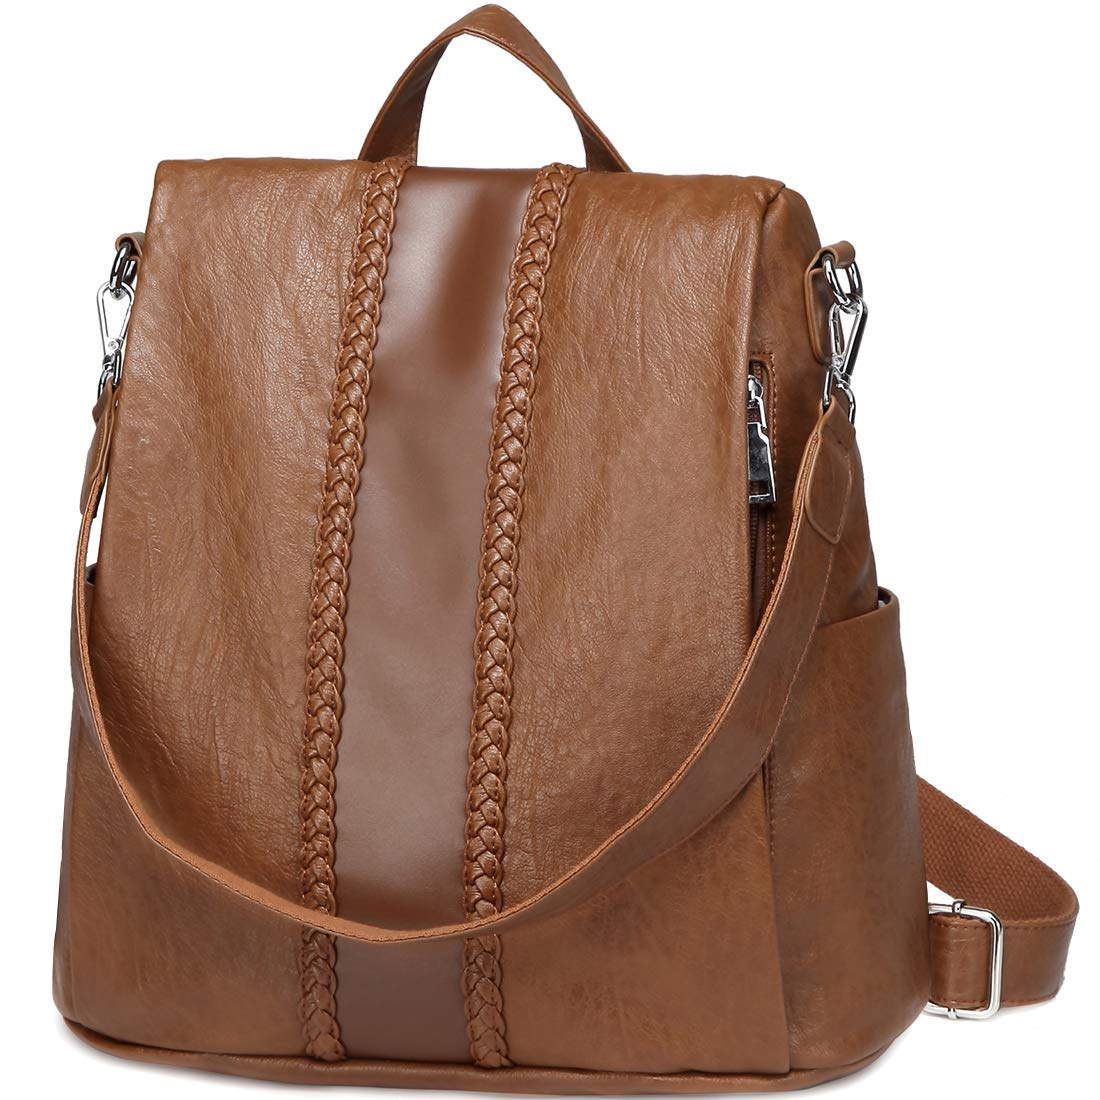 Backpack Purse for Women,VASCHY Fashion Faux Leather Convertible Anti-theft Backpack for Ladies with Vintage Weave Brown by VASCHY (Image #1)